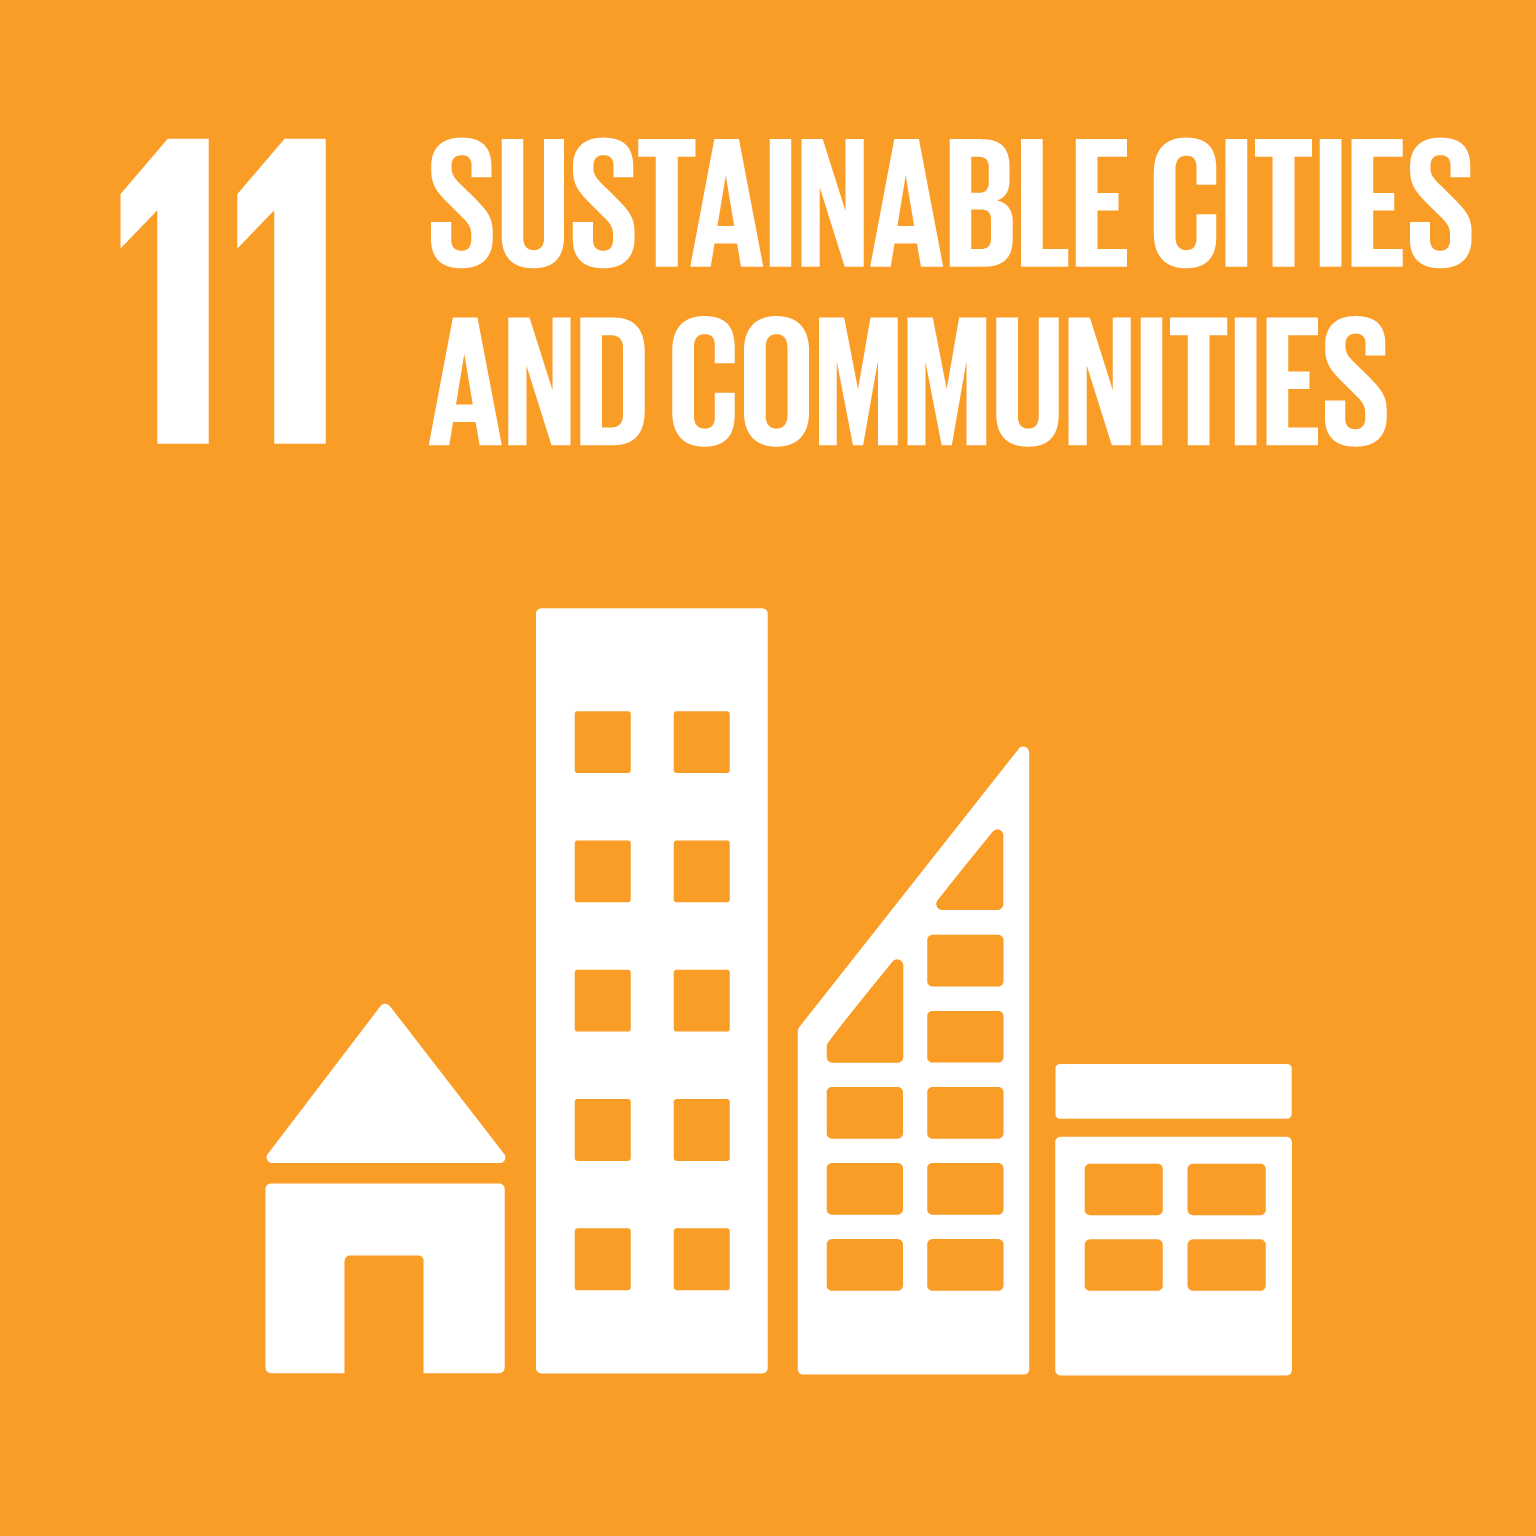 SDG Goal 11 'Sustainable cities and communities' © UN